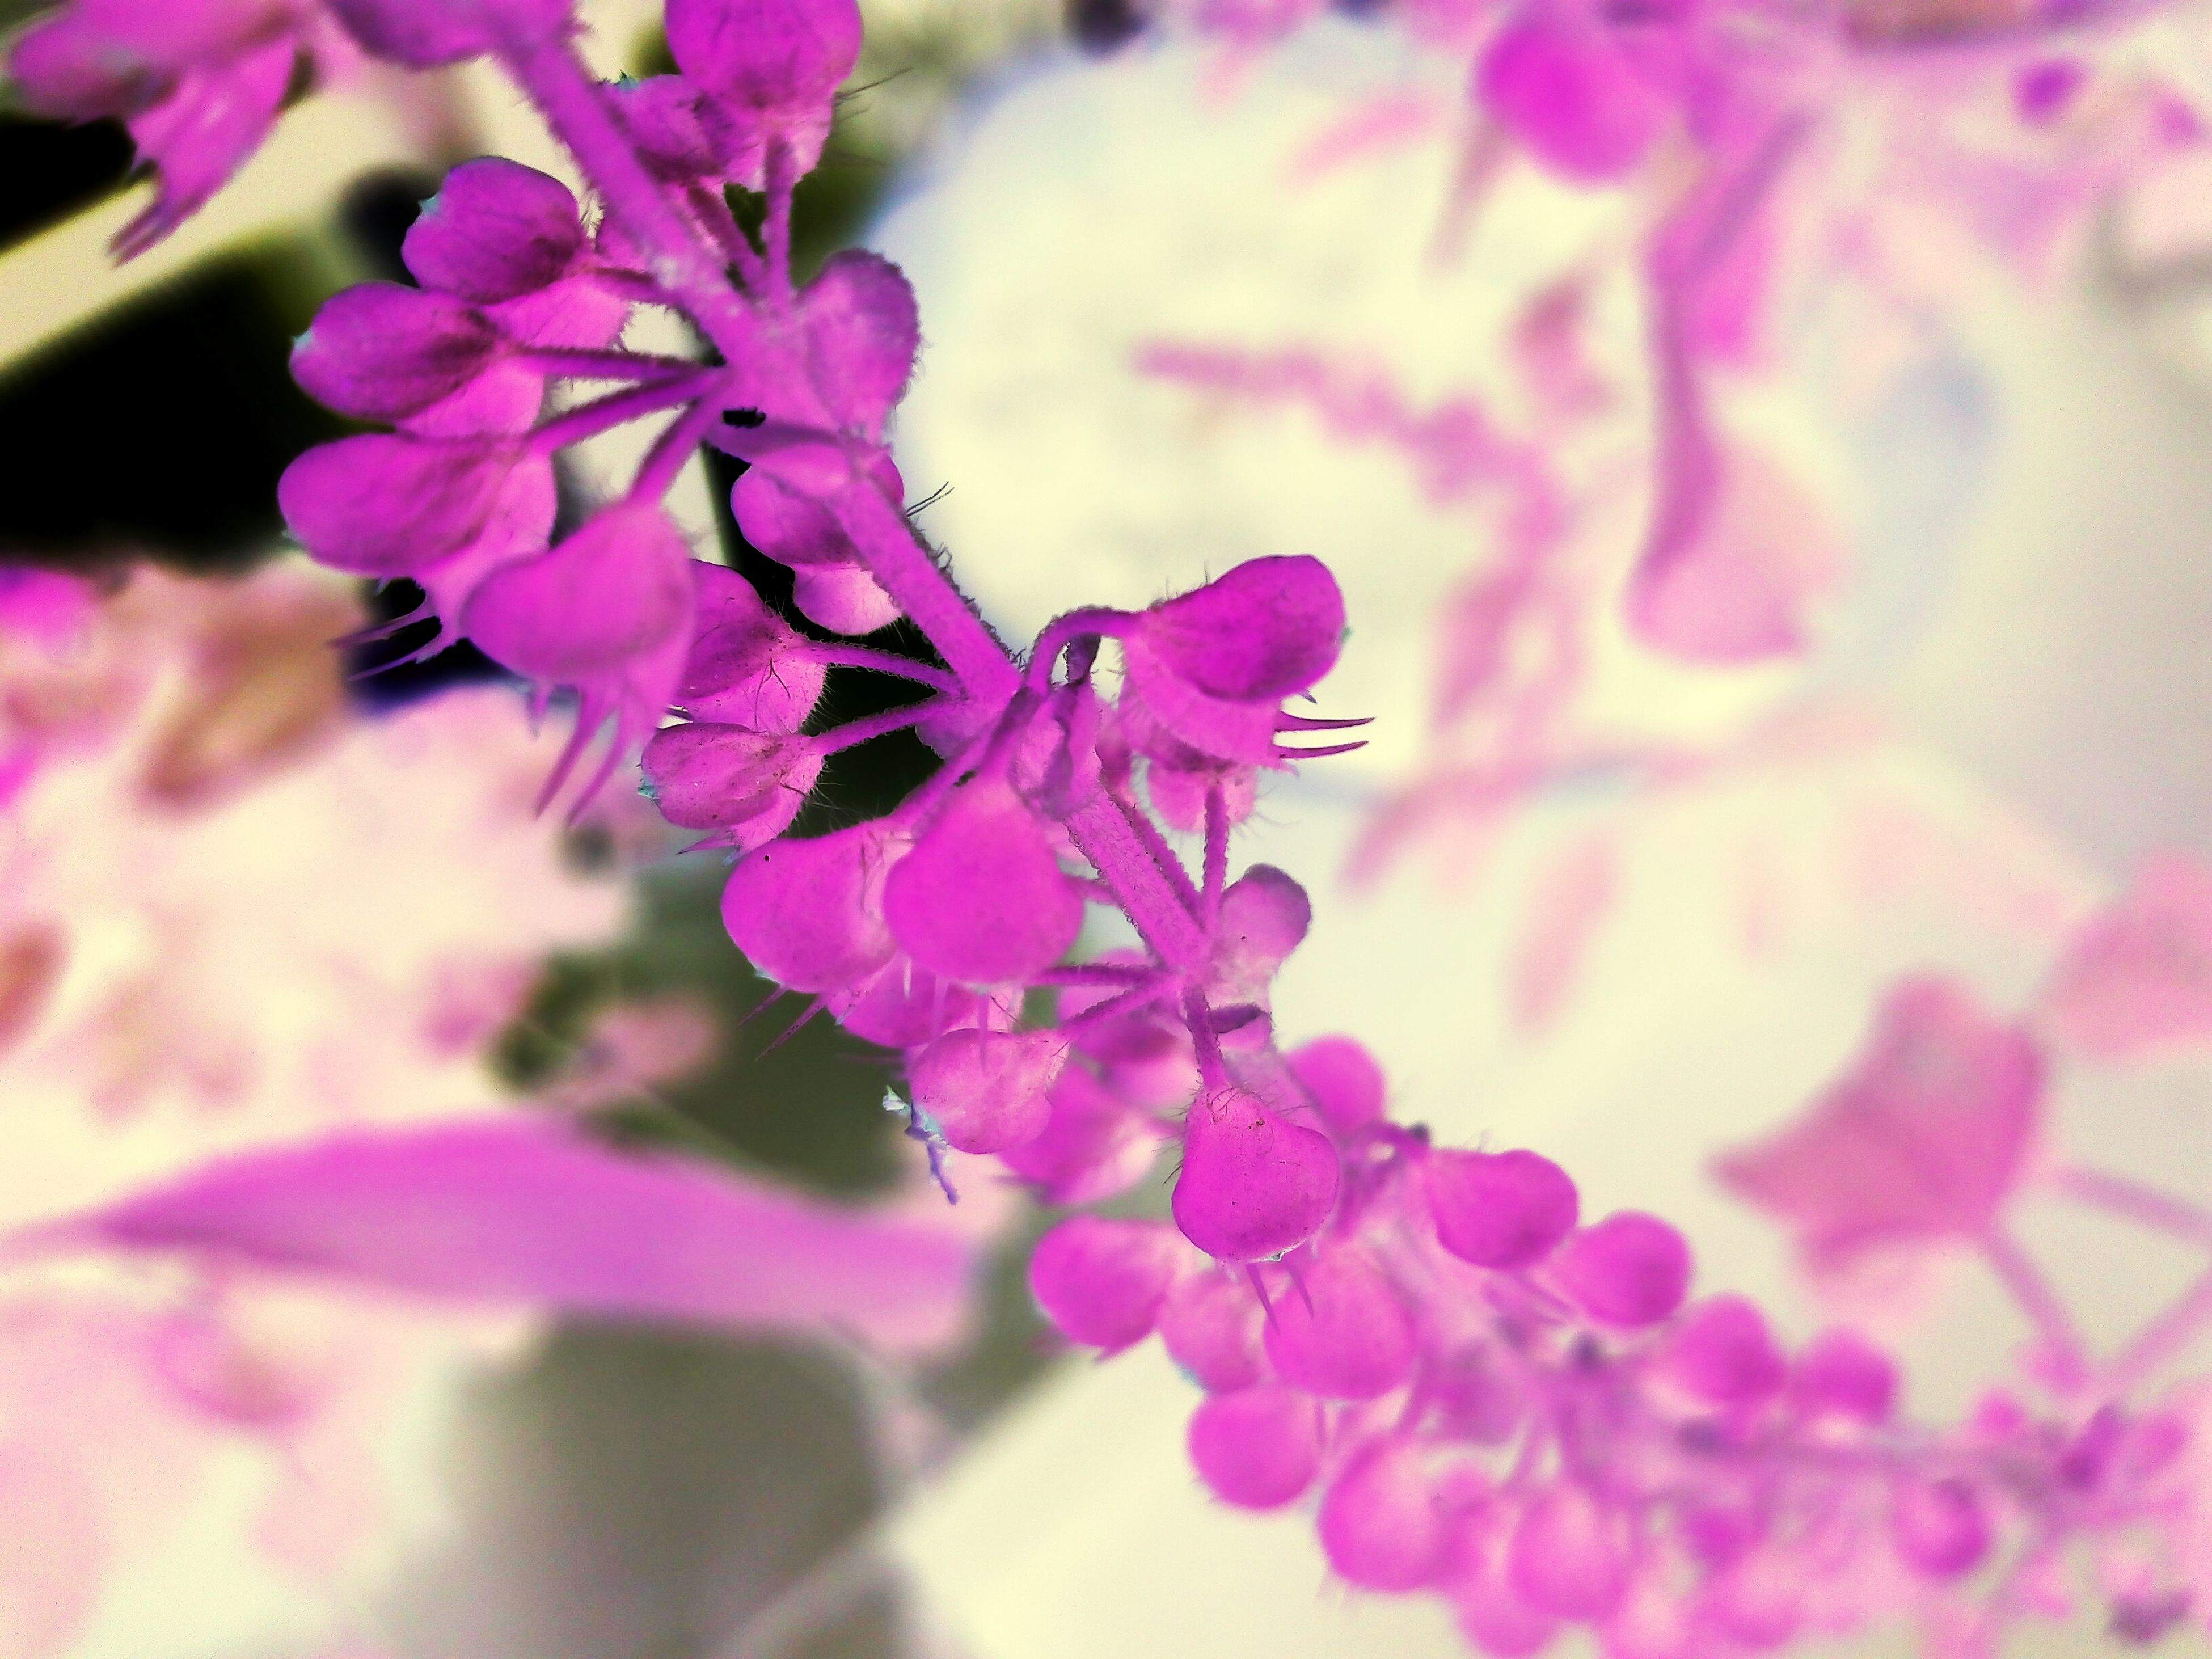 flower, freshness, fragility, petal, close-up, growth, beauty in nature, pink color, focus on foreground, selective focus, nature, purple, flower head, blooming, in bloom, plant, bunch of flowers, blossom, pink, springtime